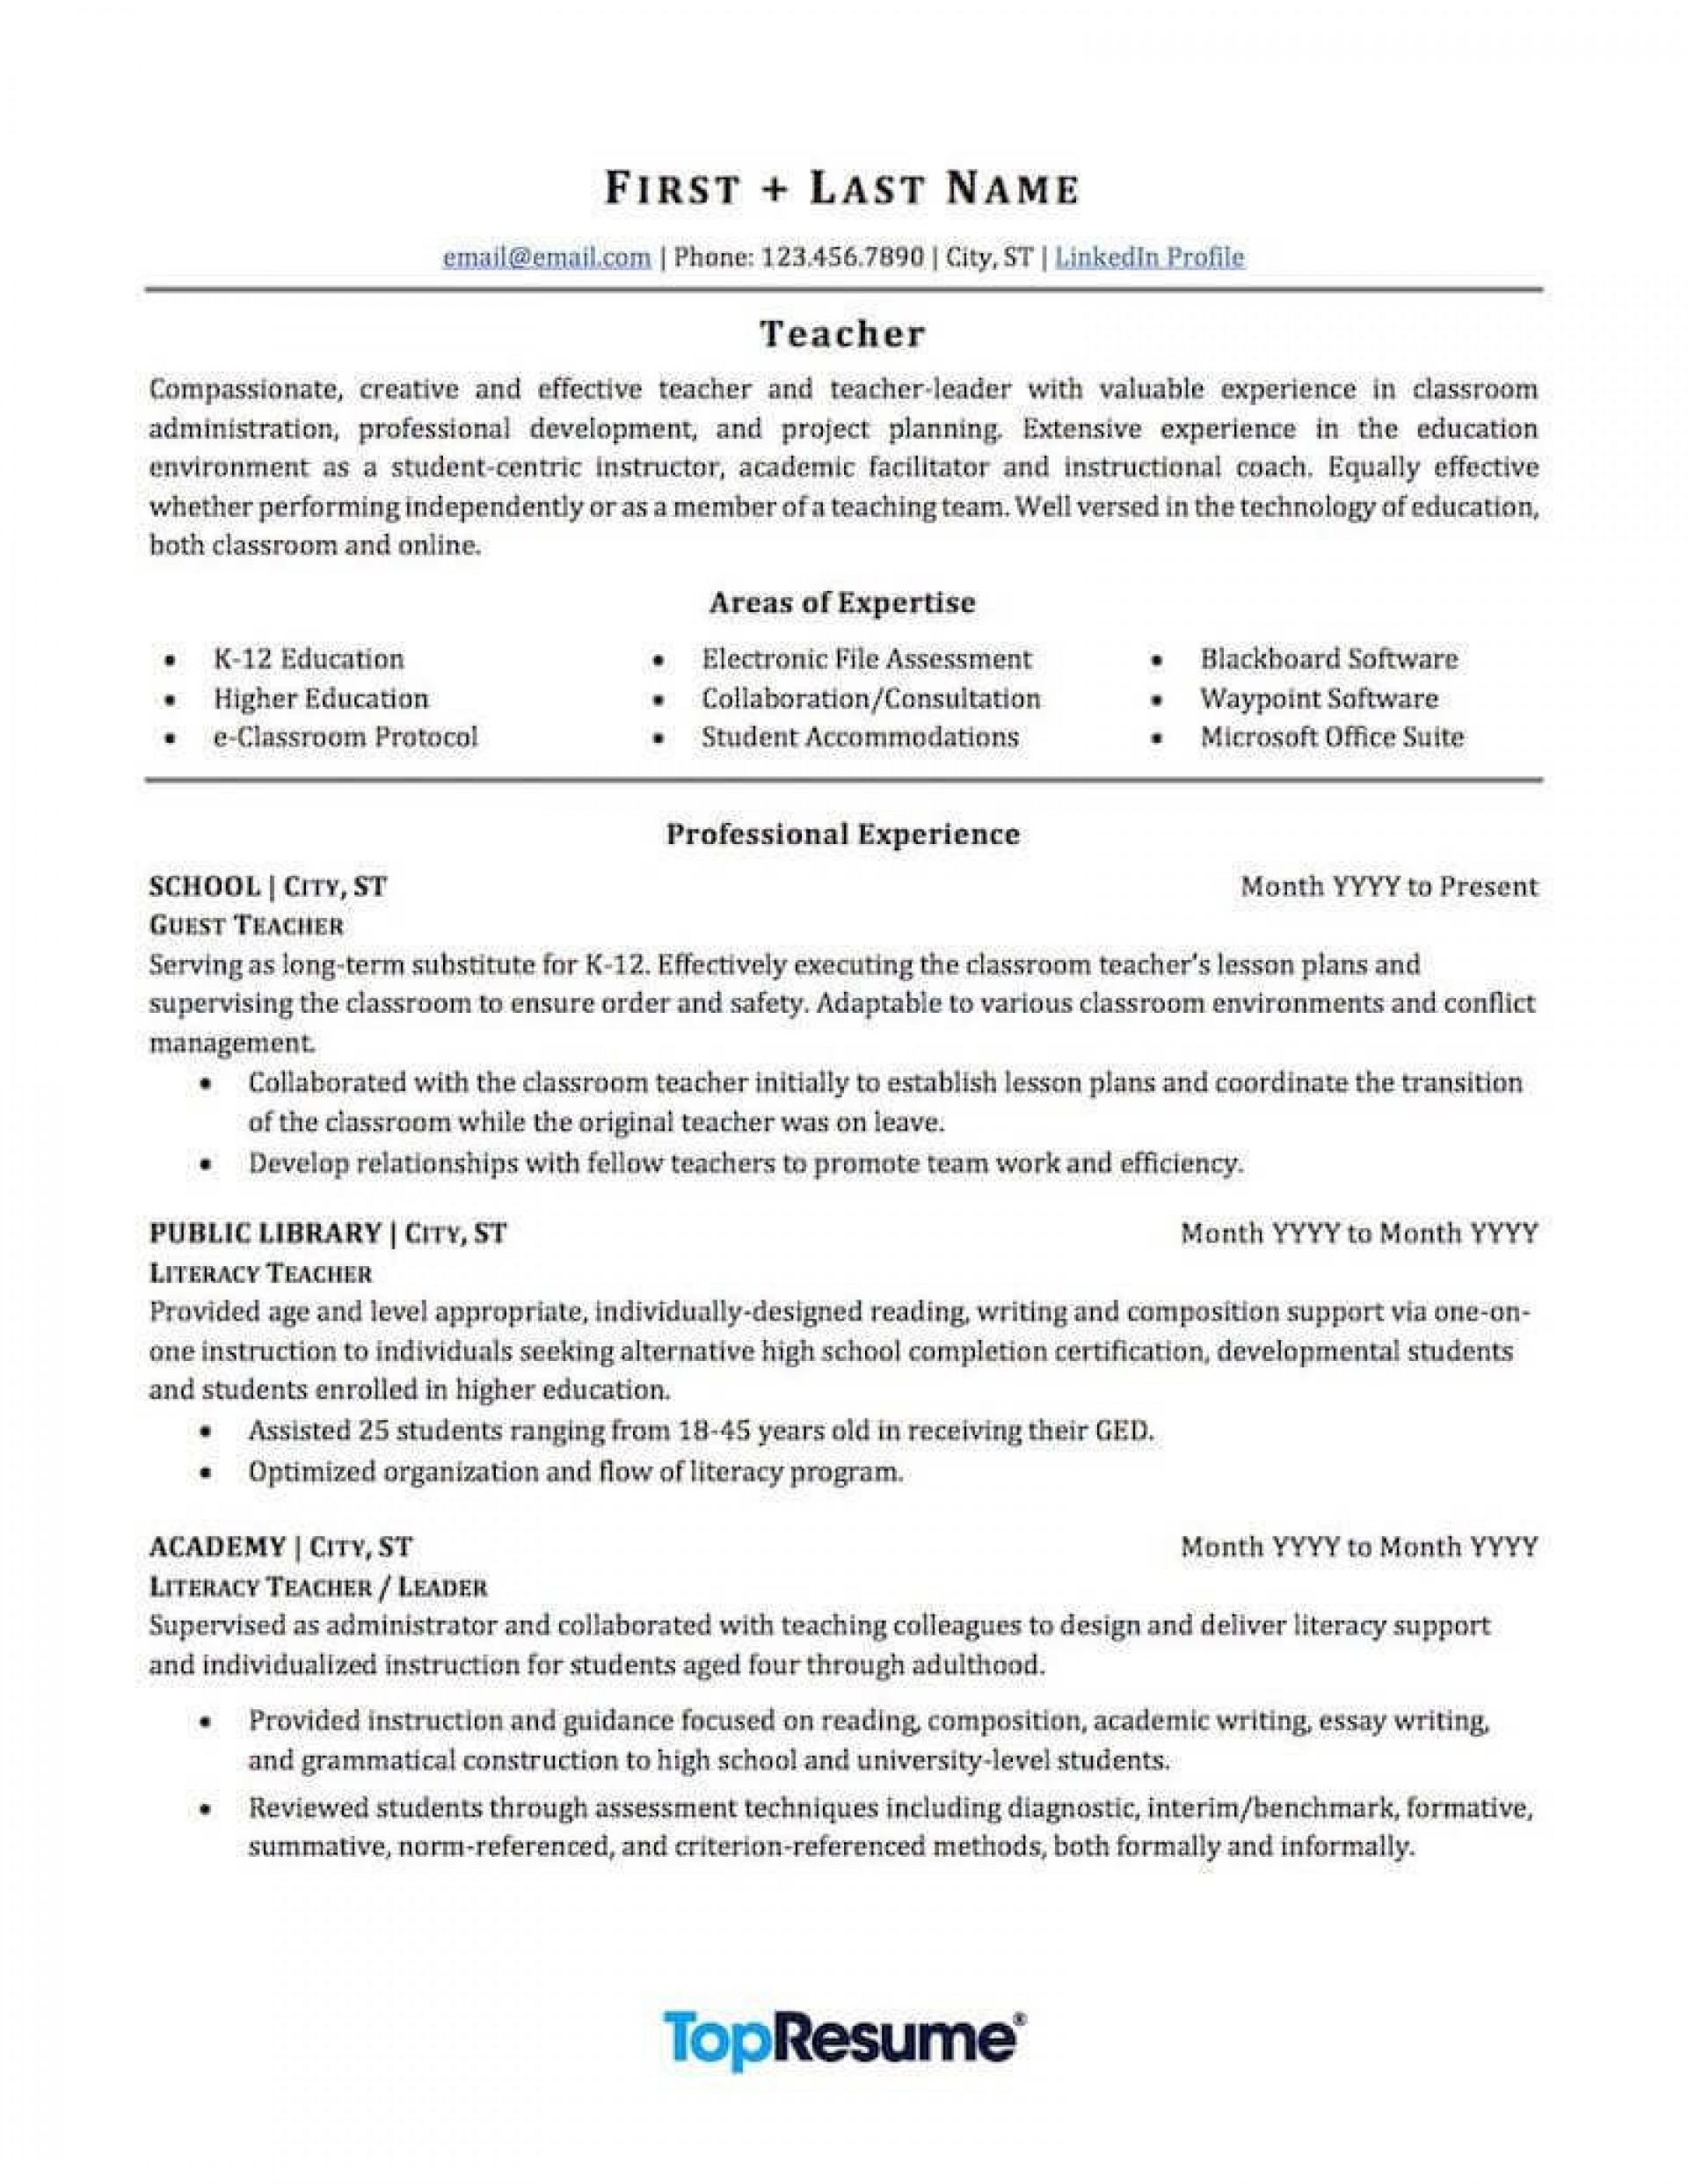 007 Top Resume Example For Teaching Job Concept  Jobs Format Sample Curriculum Vitae Profession In India1920